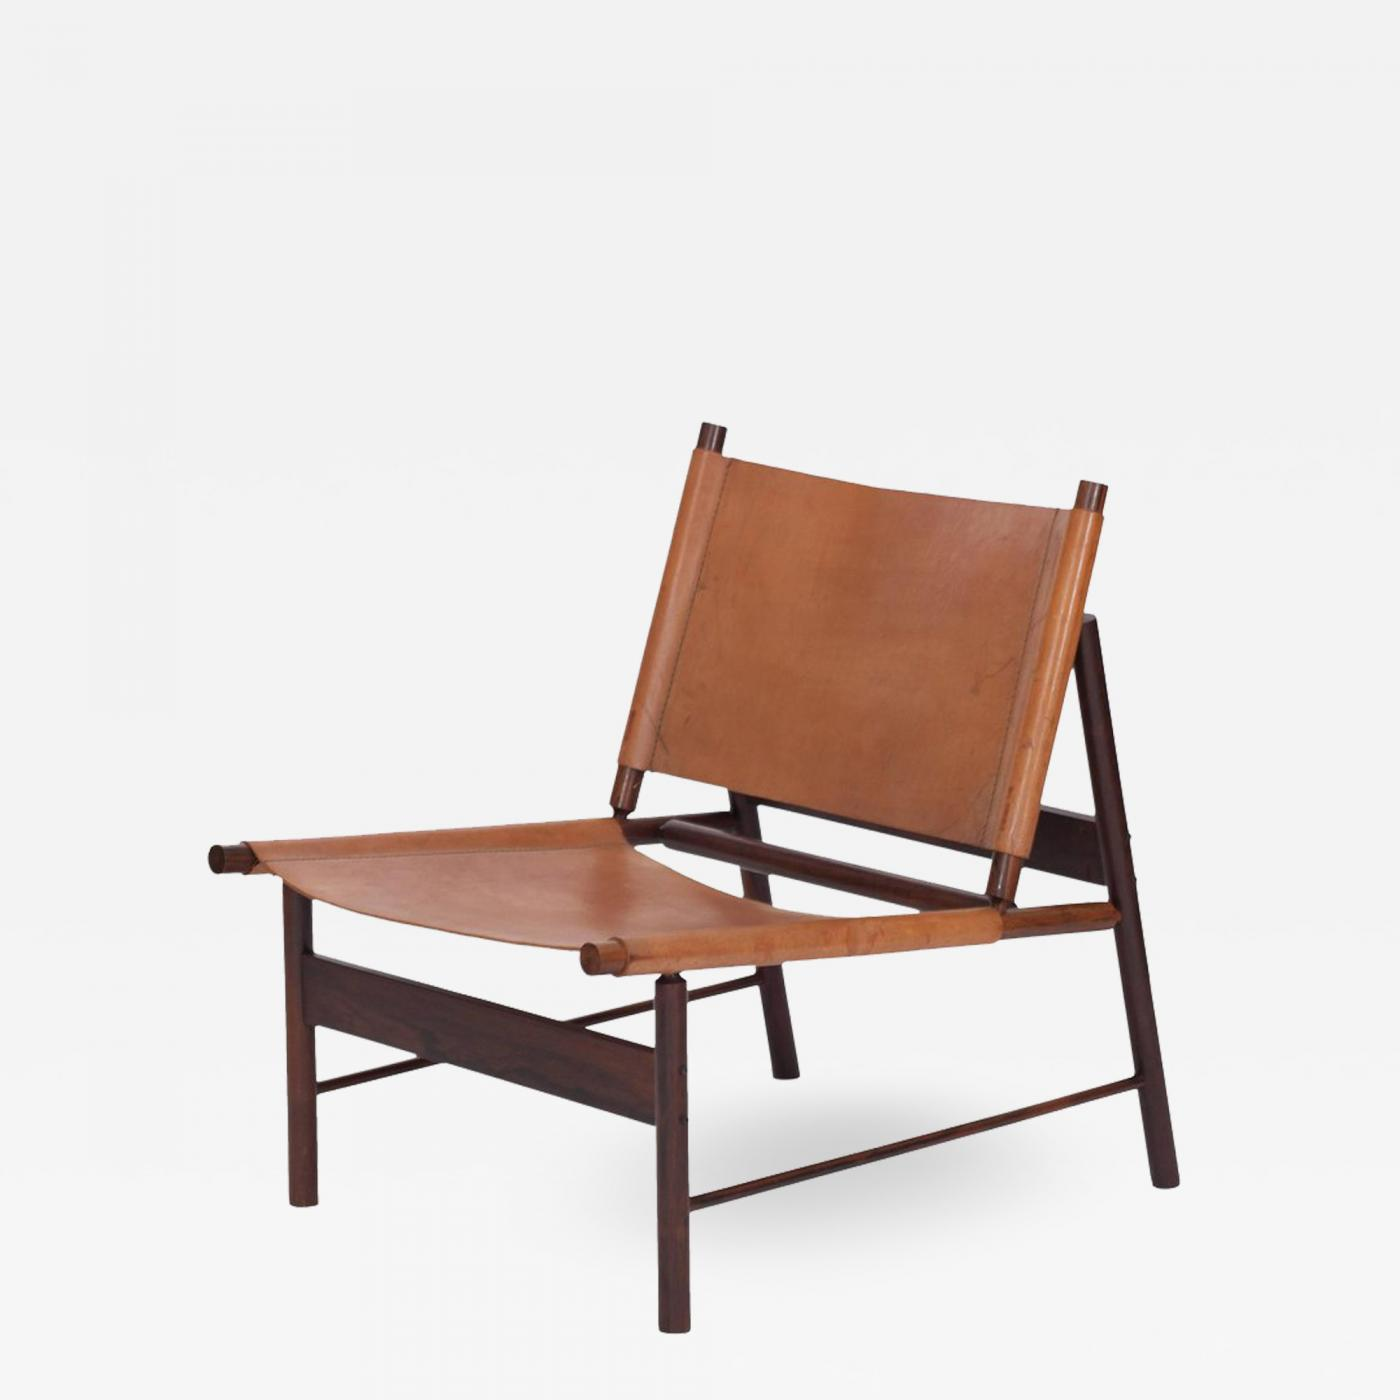 Leather Lounge Jorge Zalszupin Rosewood And Cognac Leather Lounge Chair By Jorge Zalszupin Brazil 1955